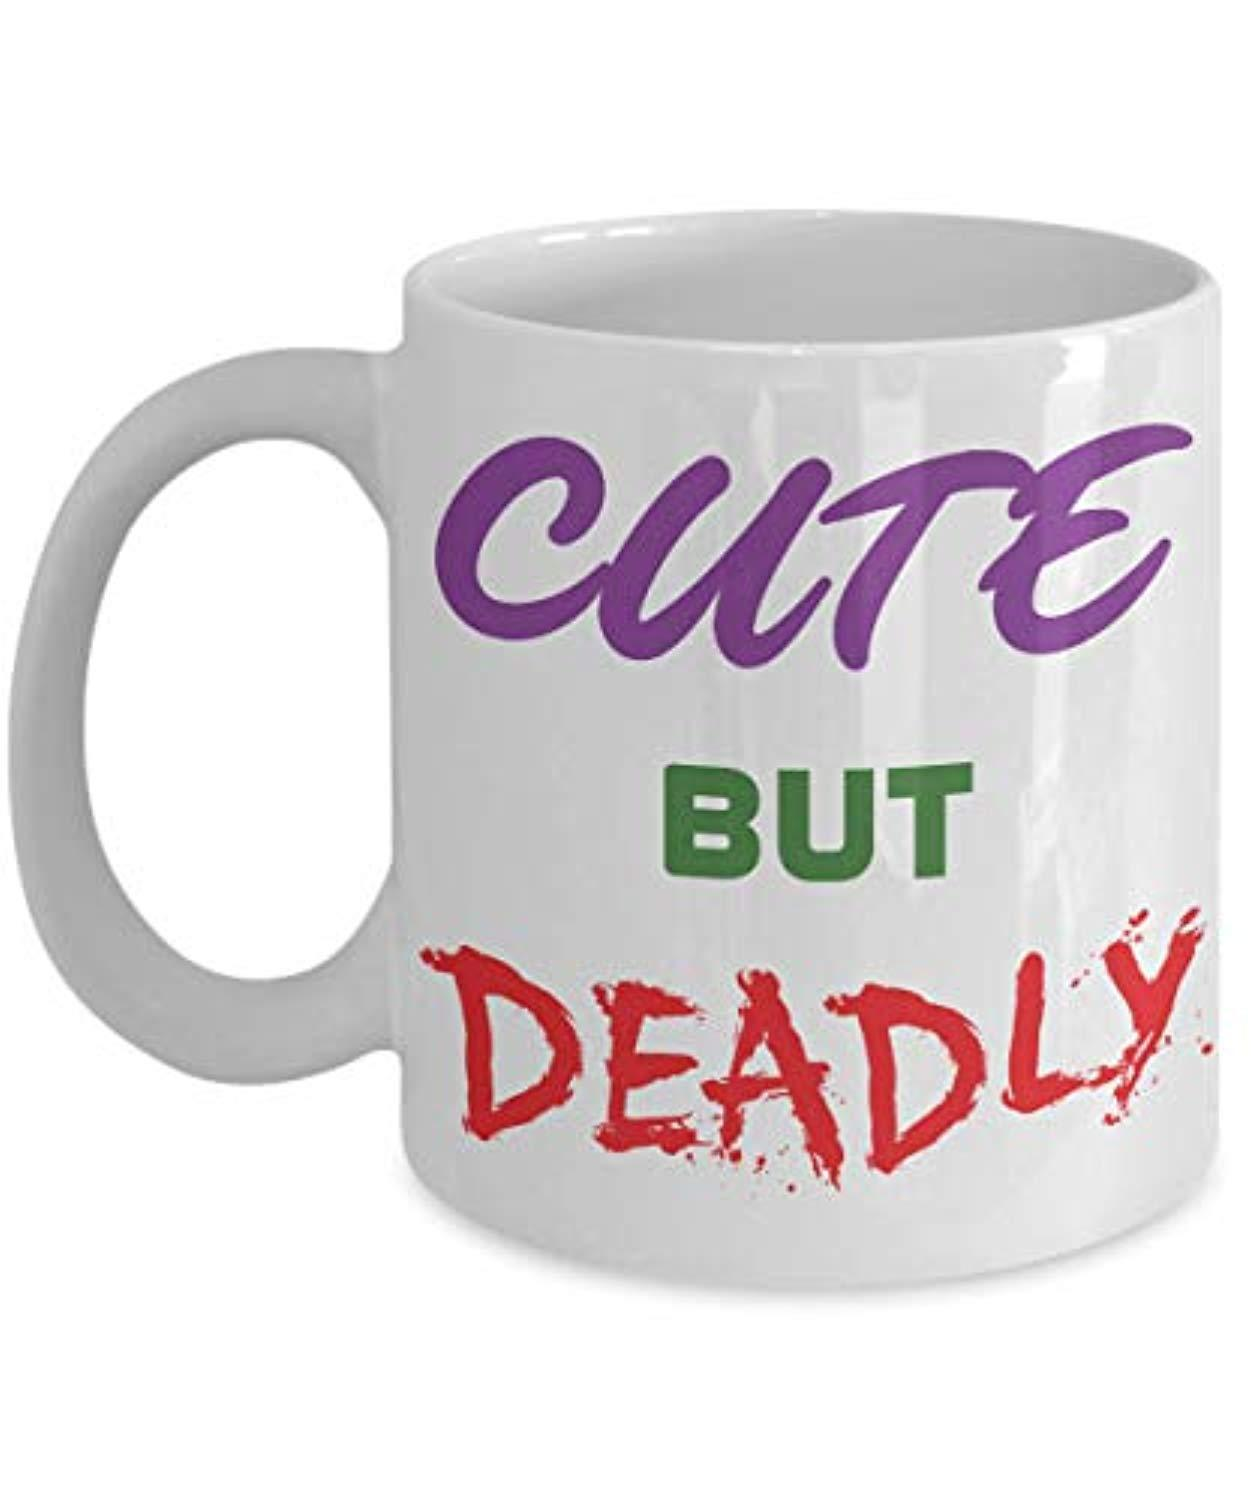 cute but deadly coffee mug